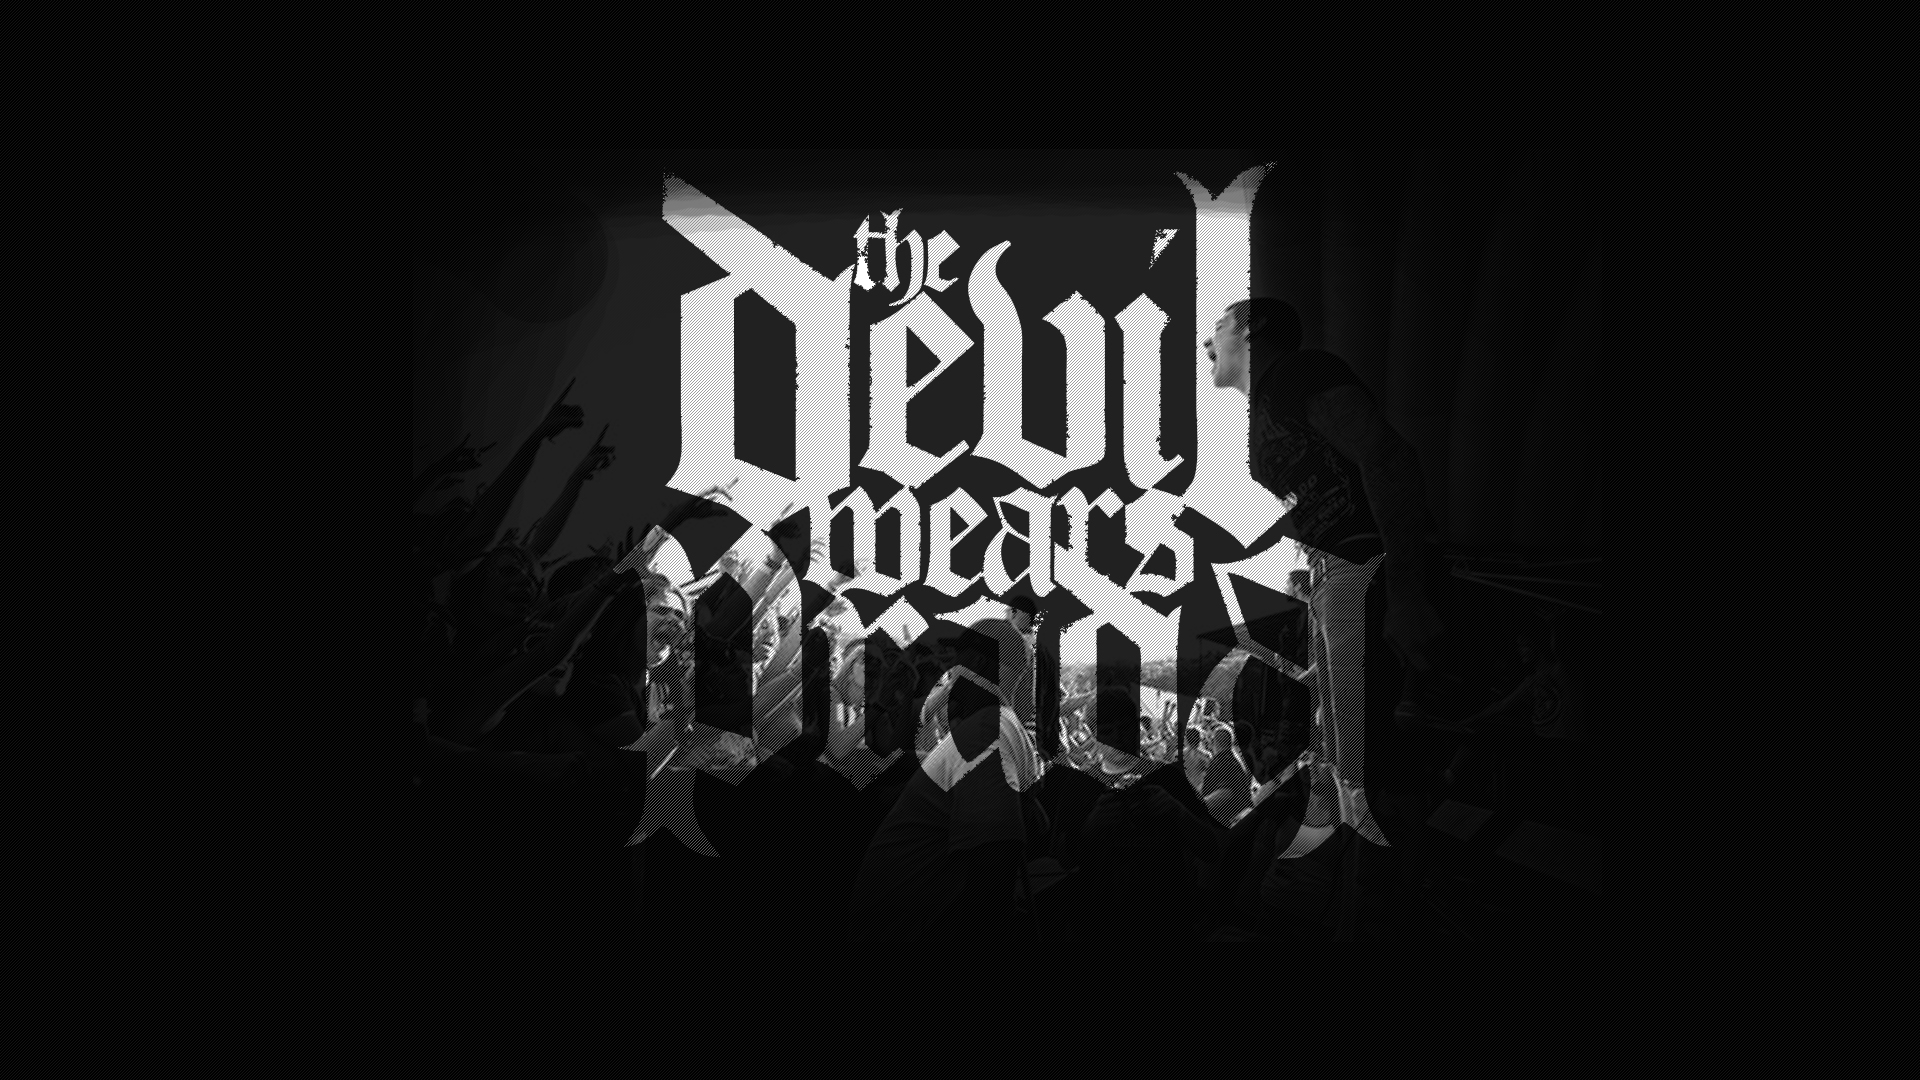 DeviantArt: More Like The Devil Wears Prada Band Wallpaper by